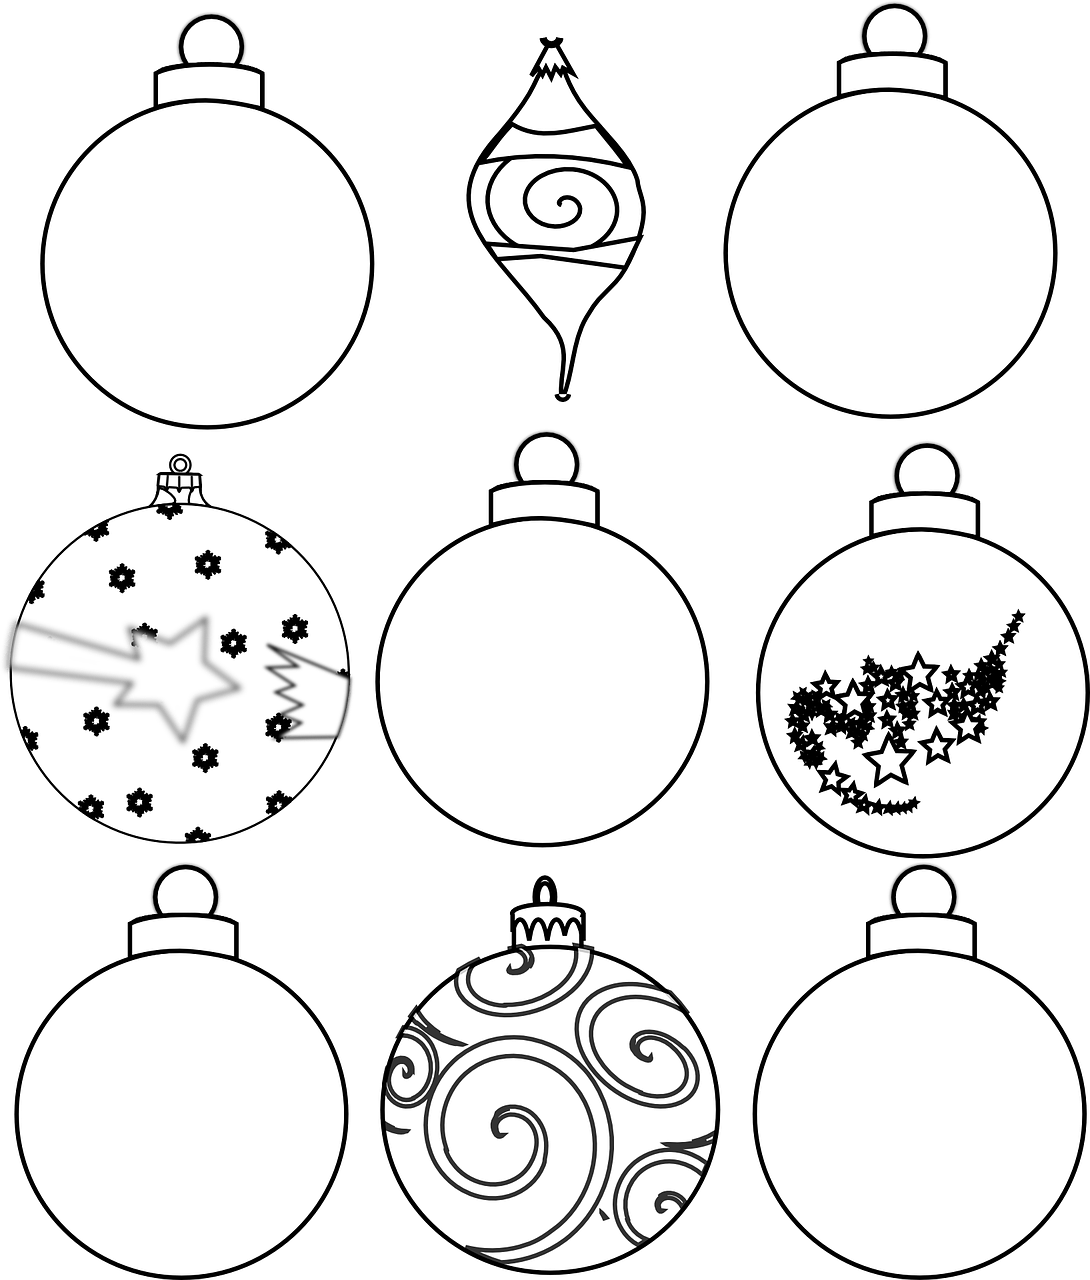 Marvelous Colour And Design Your Own Christmas Ornaments Printables In The Easy Diy Christmas Decorations Tissureus